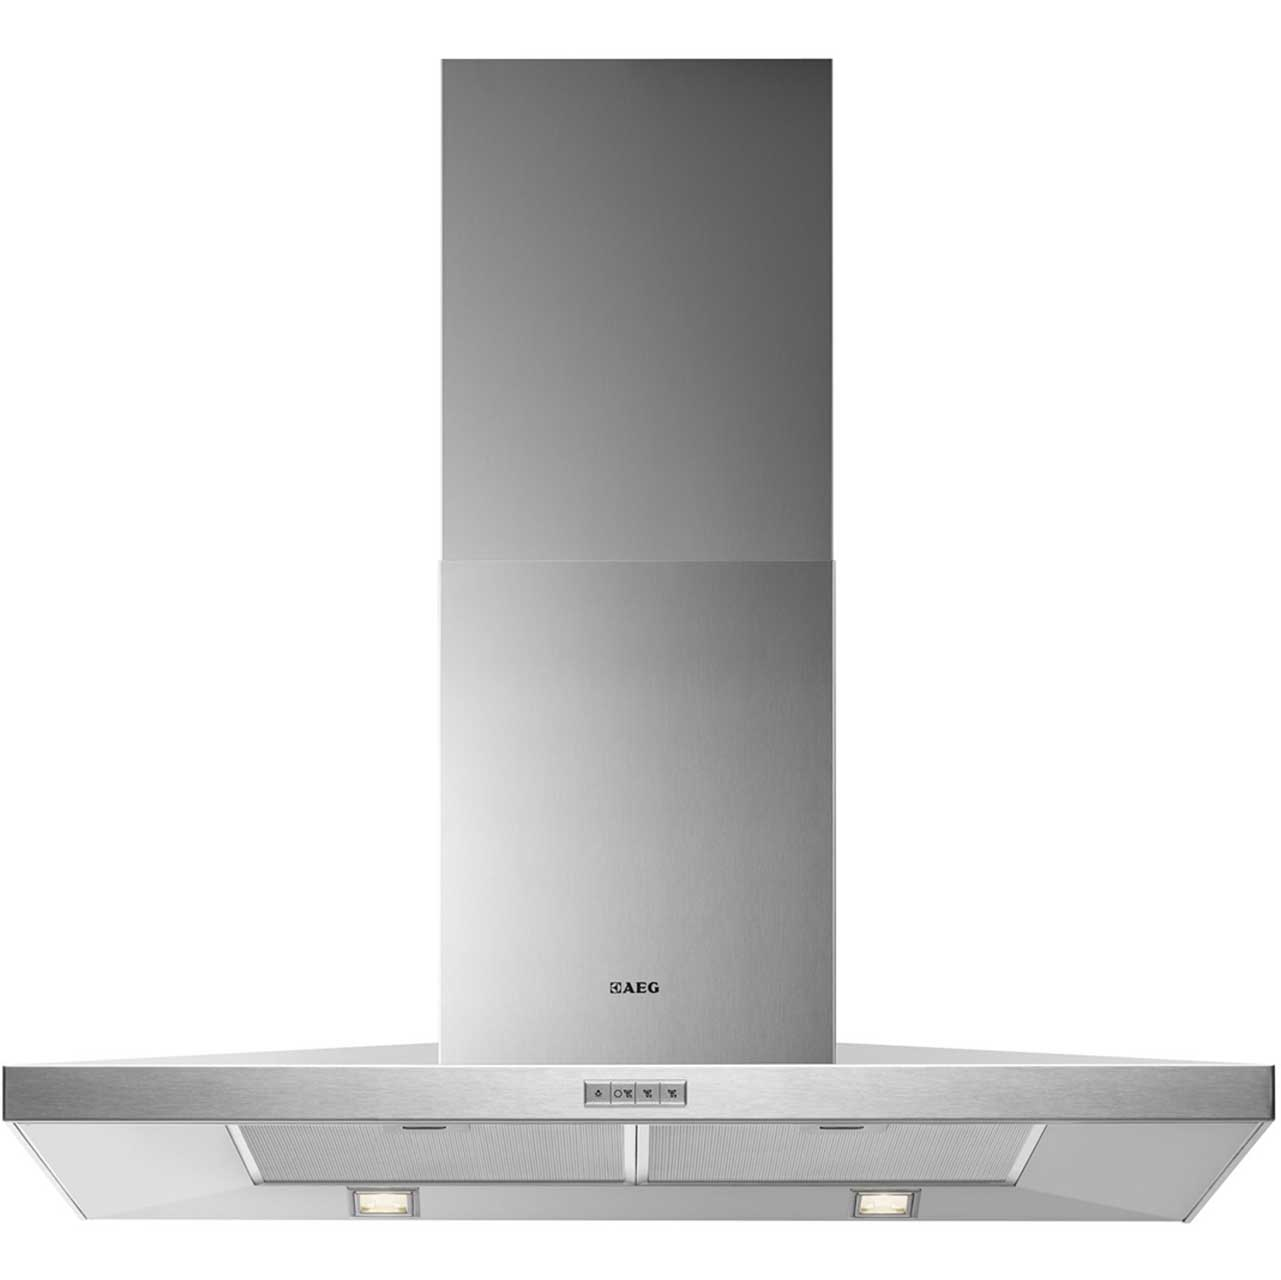 AEG X69163MK1 Integrated Cooker Hood in Stainless Steel